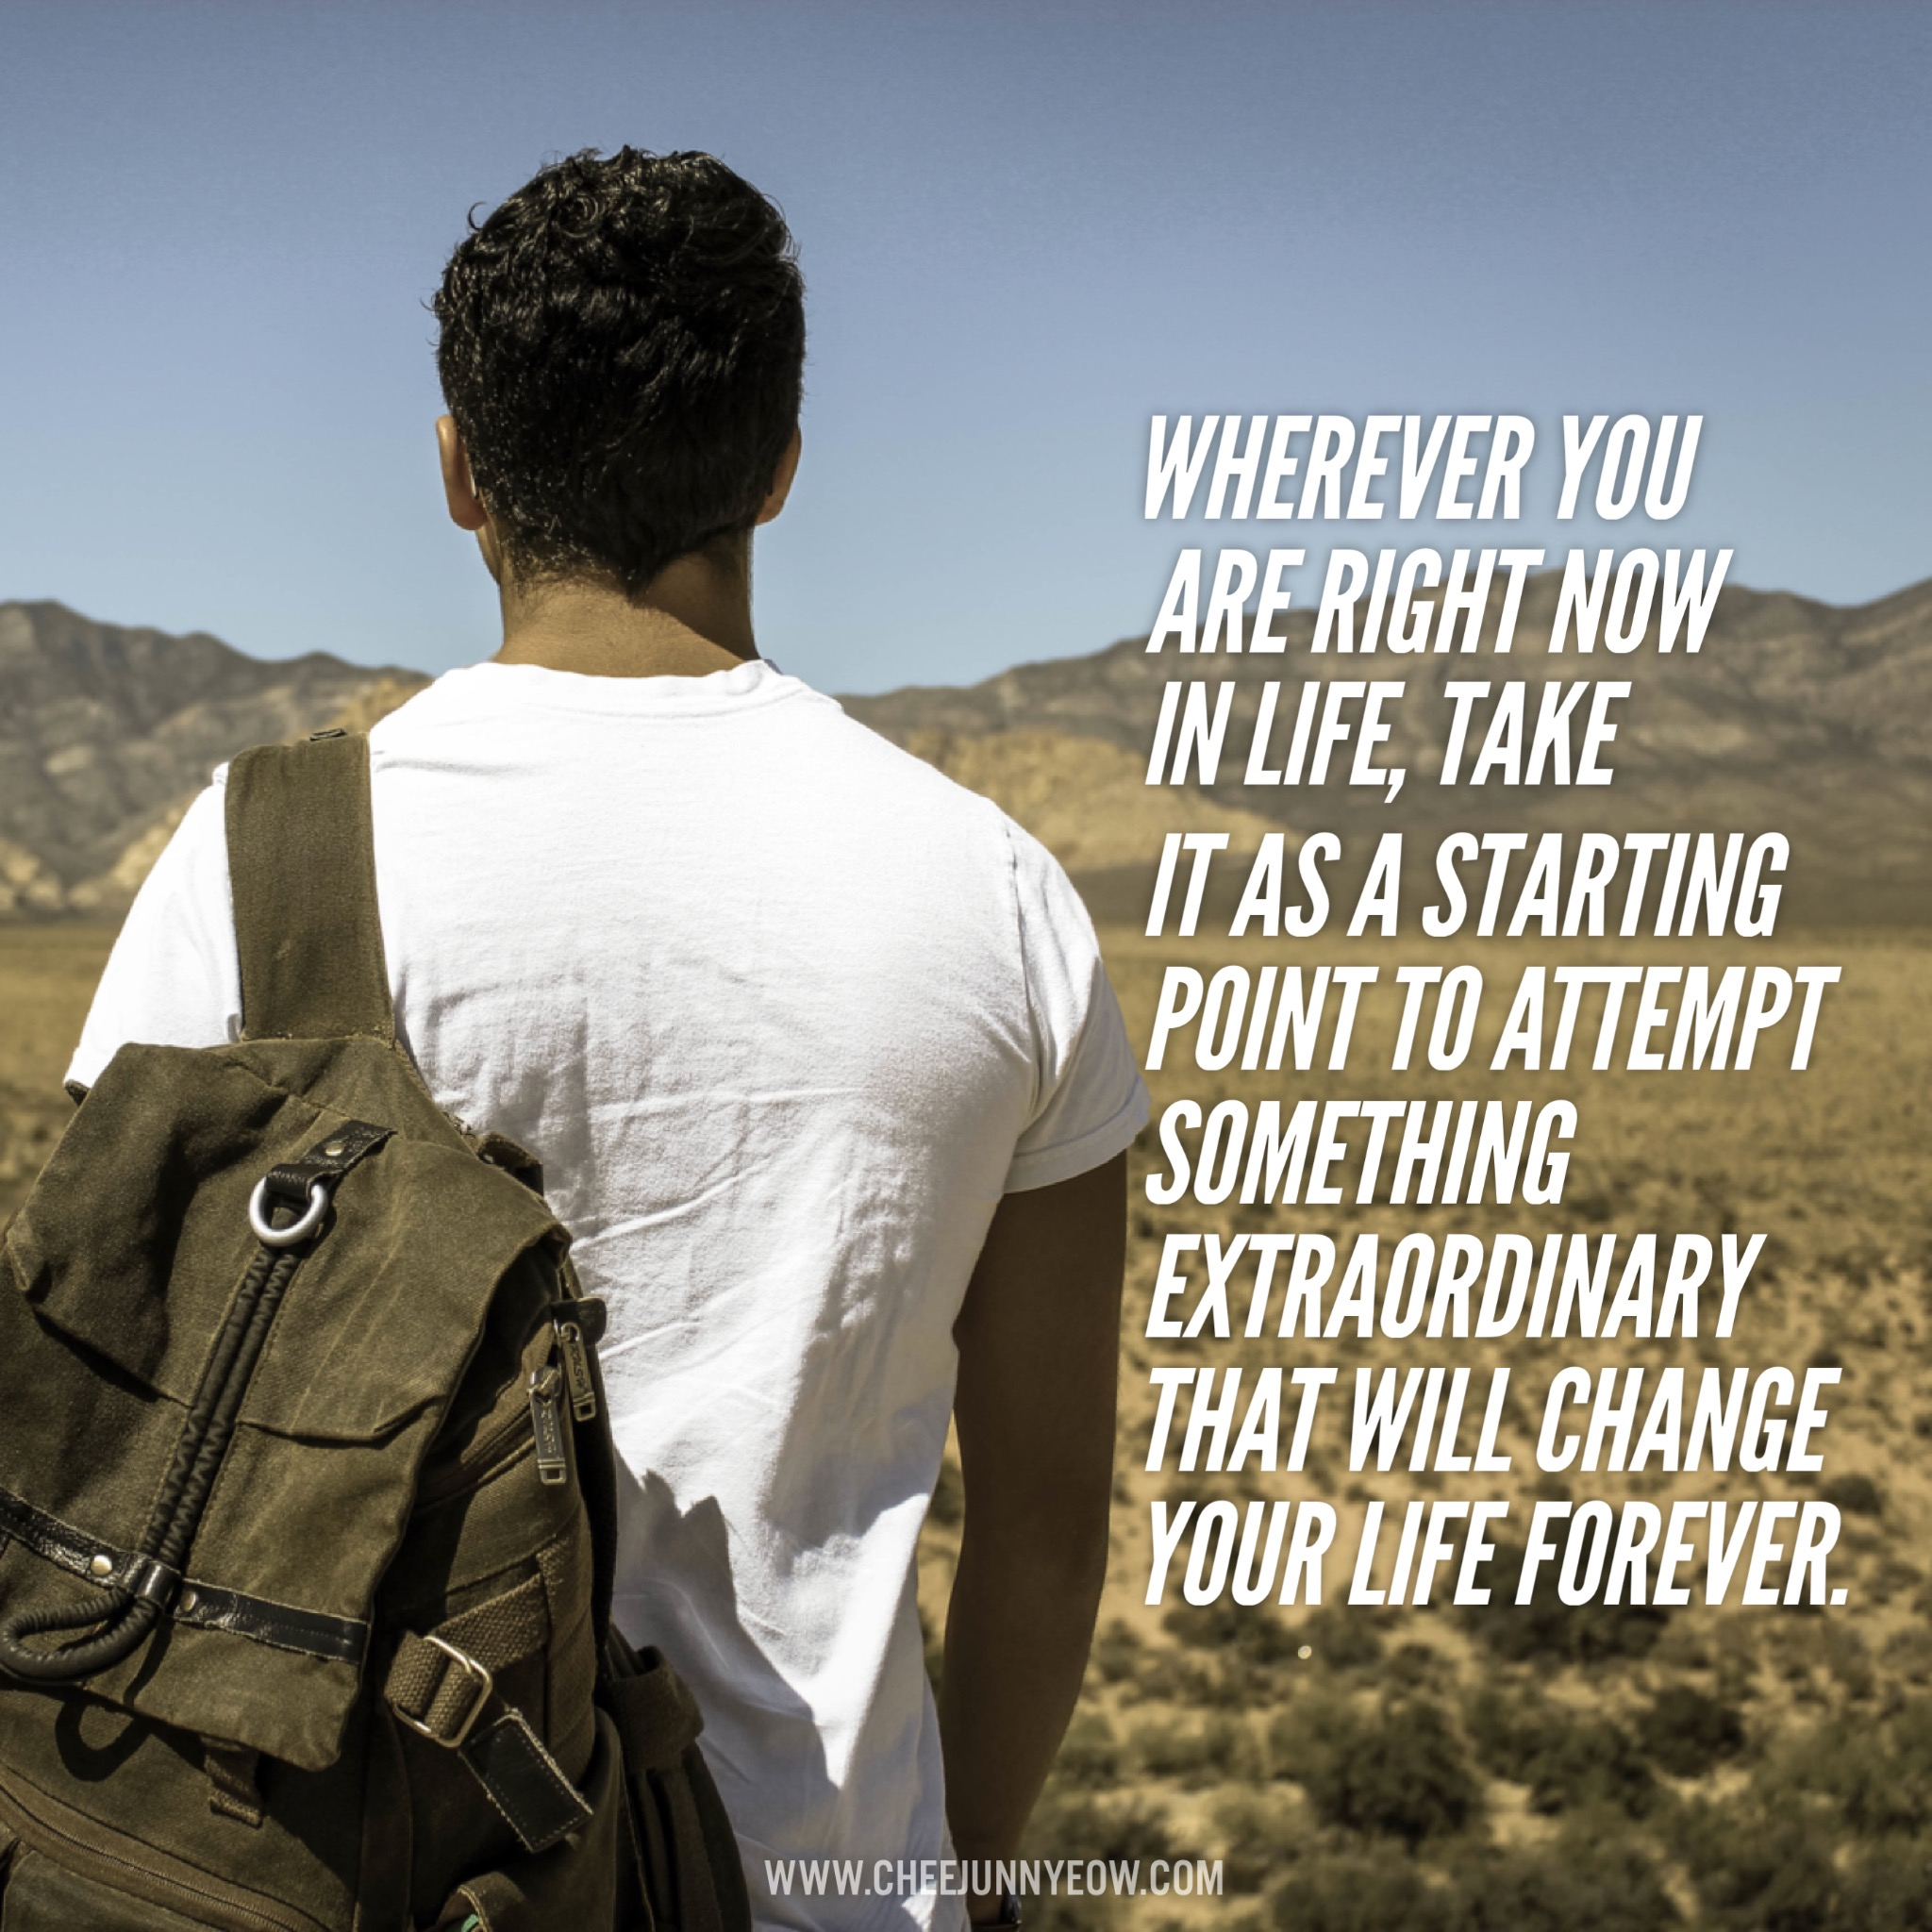 wherever you are right now in life, take it as a starting point to attempt something extraordinary that will change your life forever